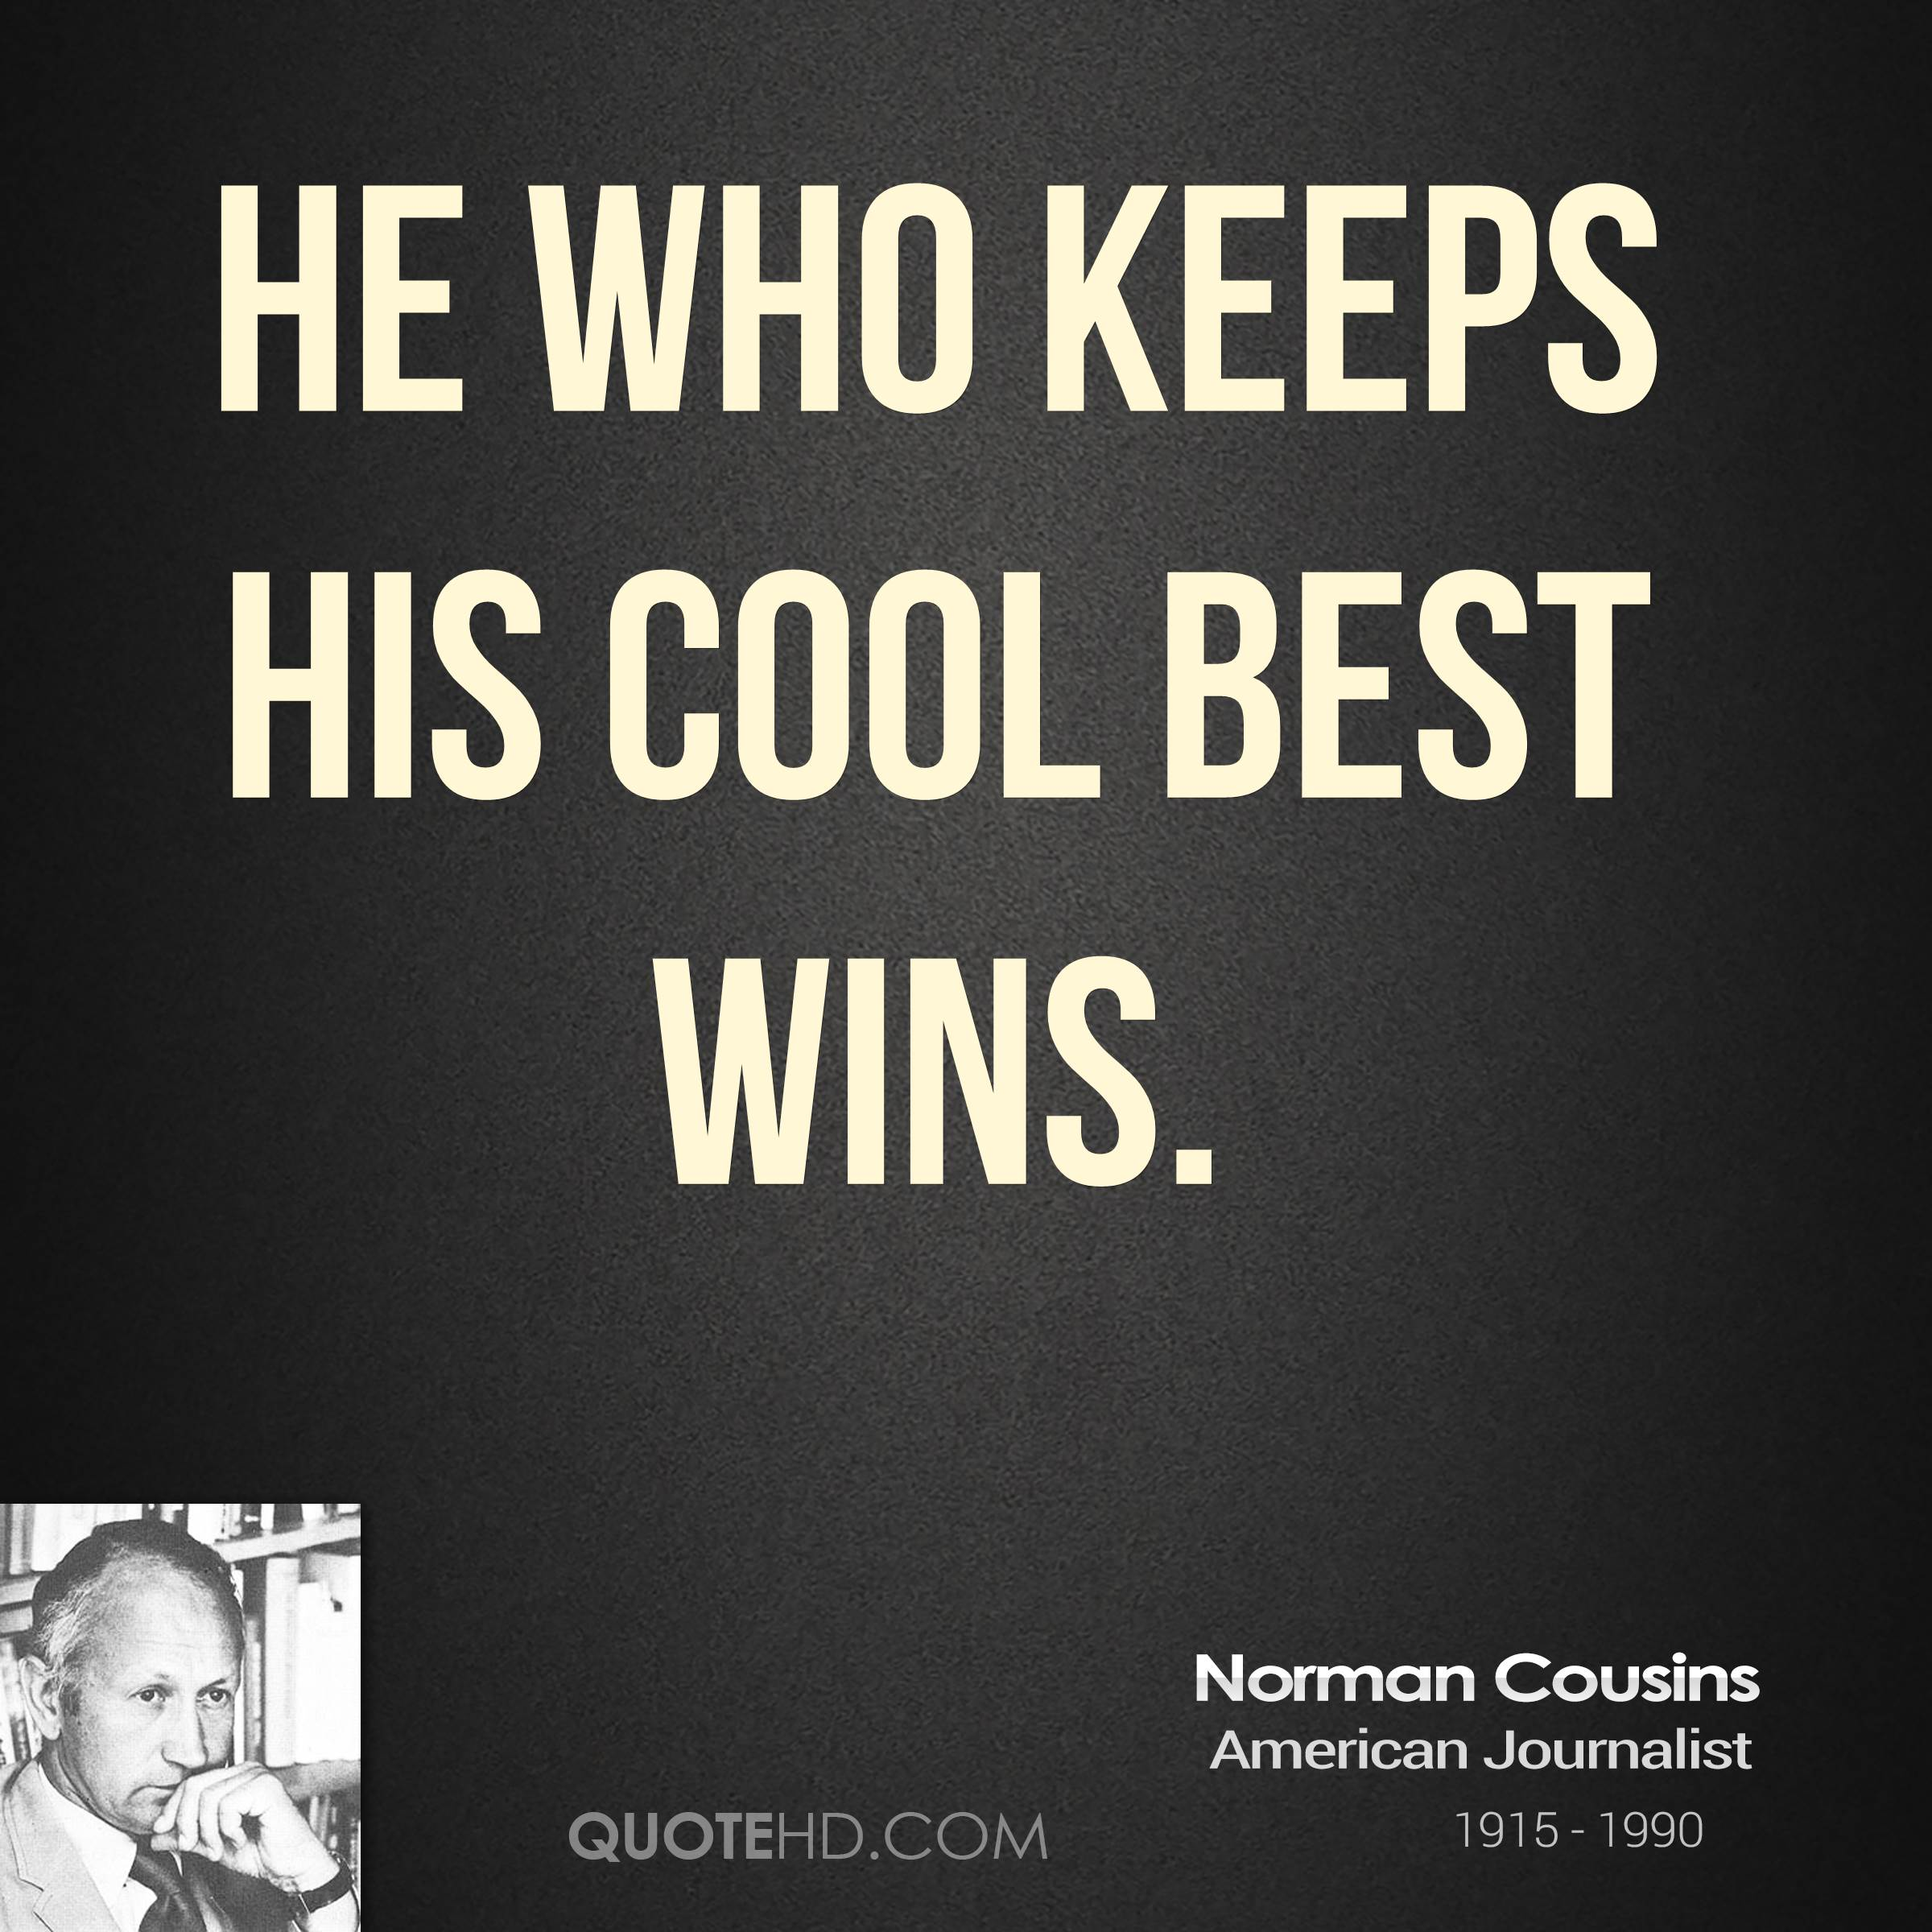 He who keeps his cool best wins.